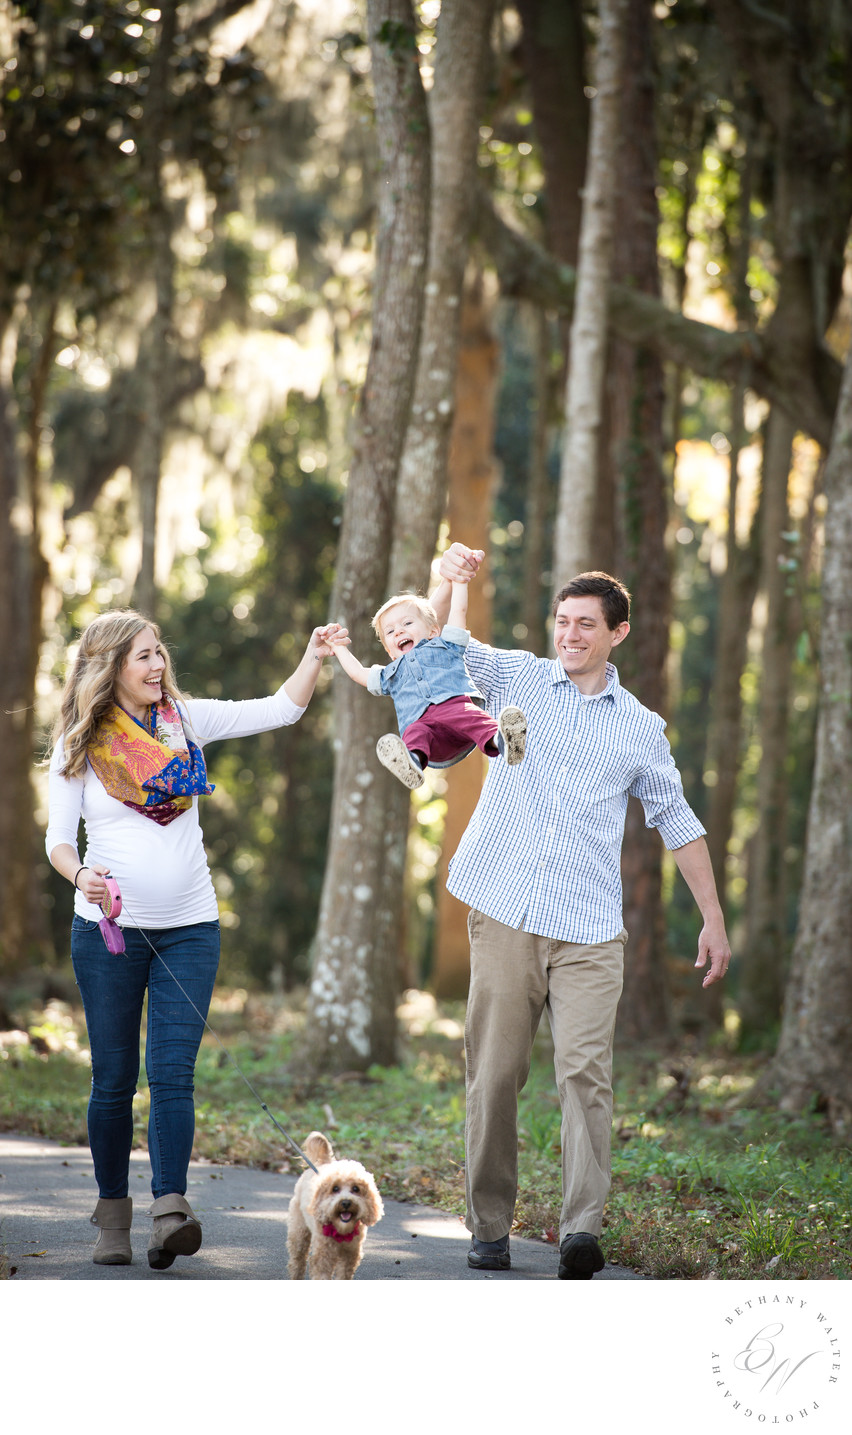 Maternity Family Session with Pup in St Johns County